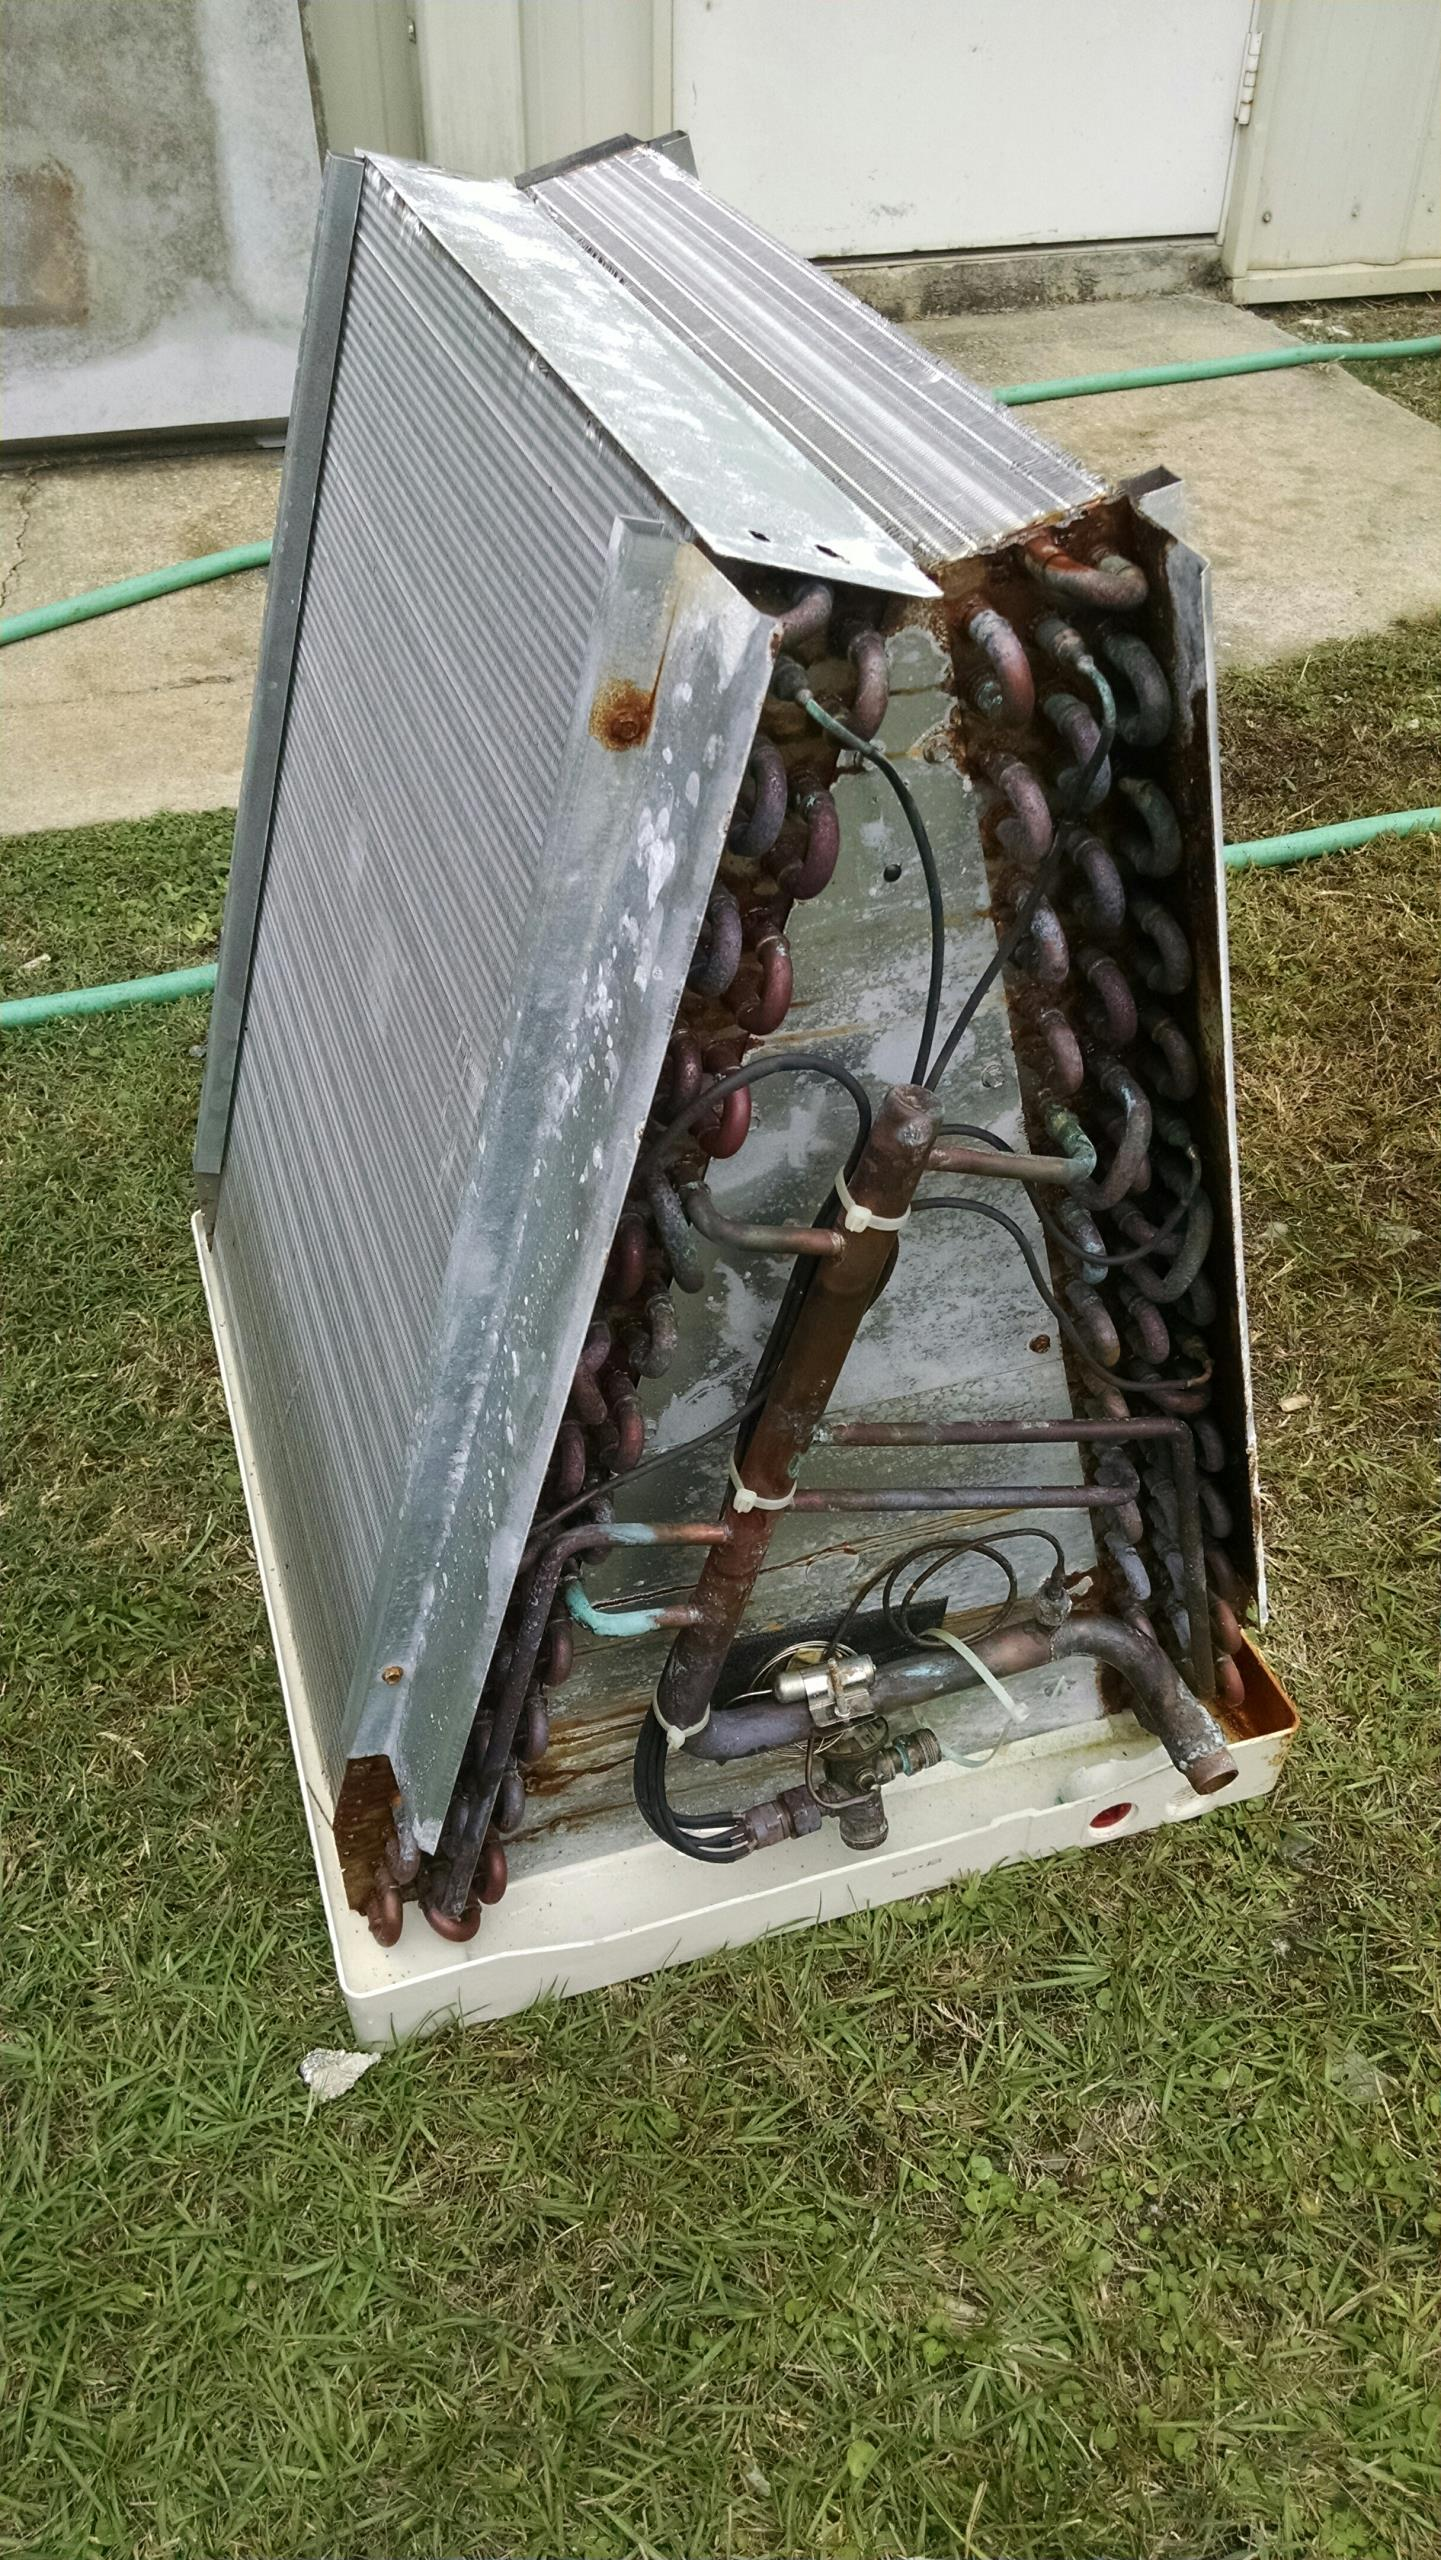 Replace leaking evaporator coil on heat pump air conditioner 410a